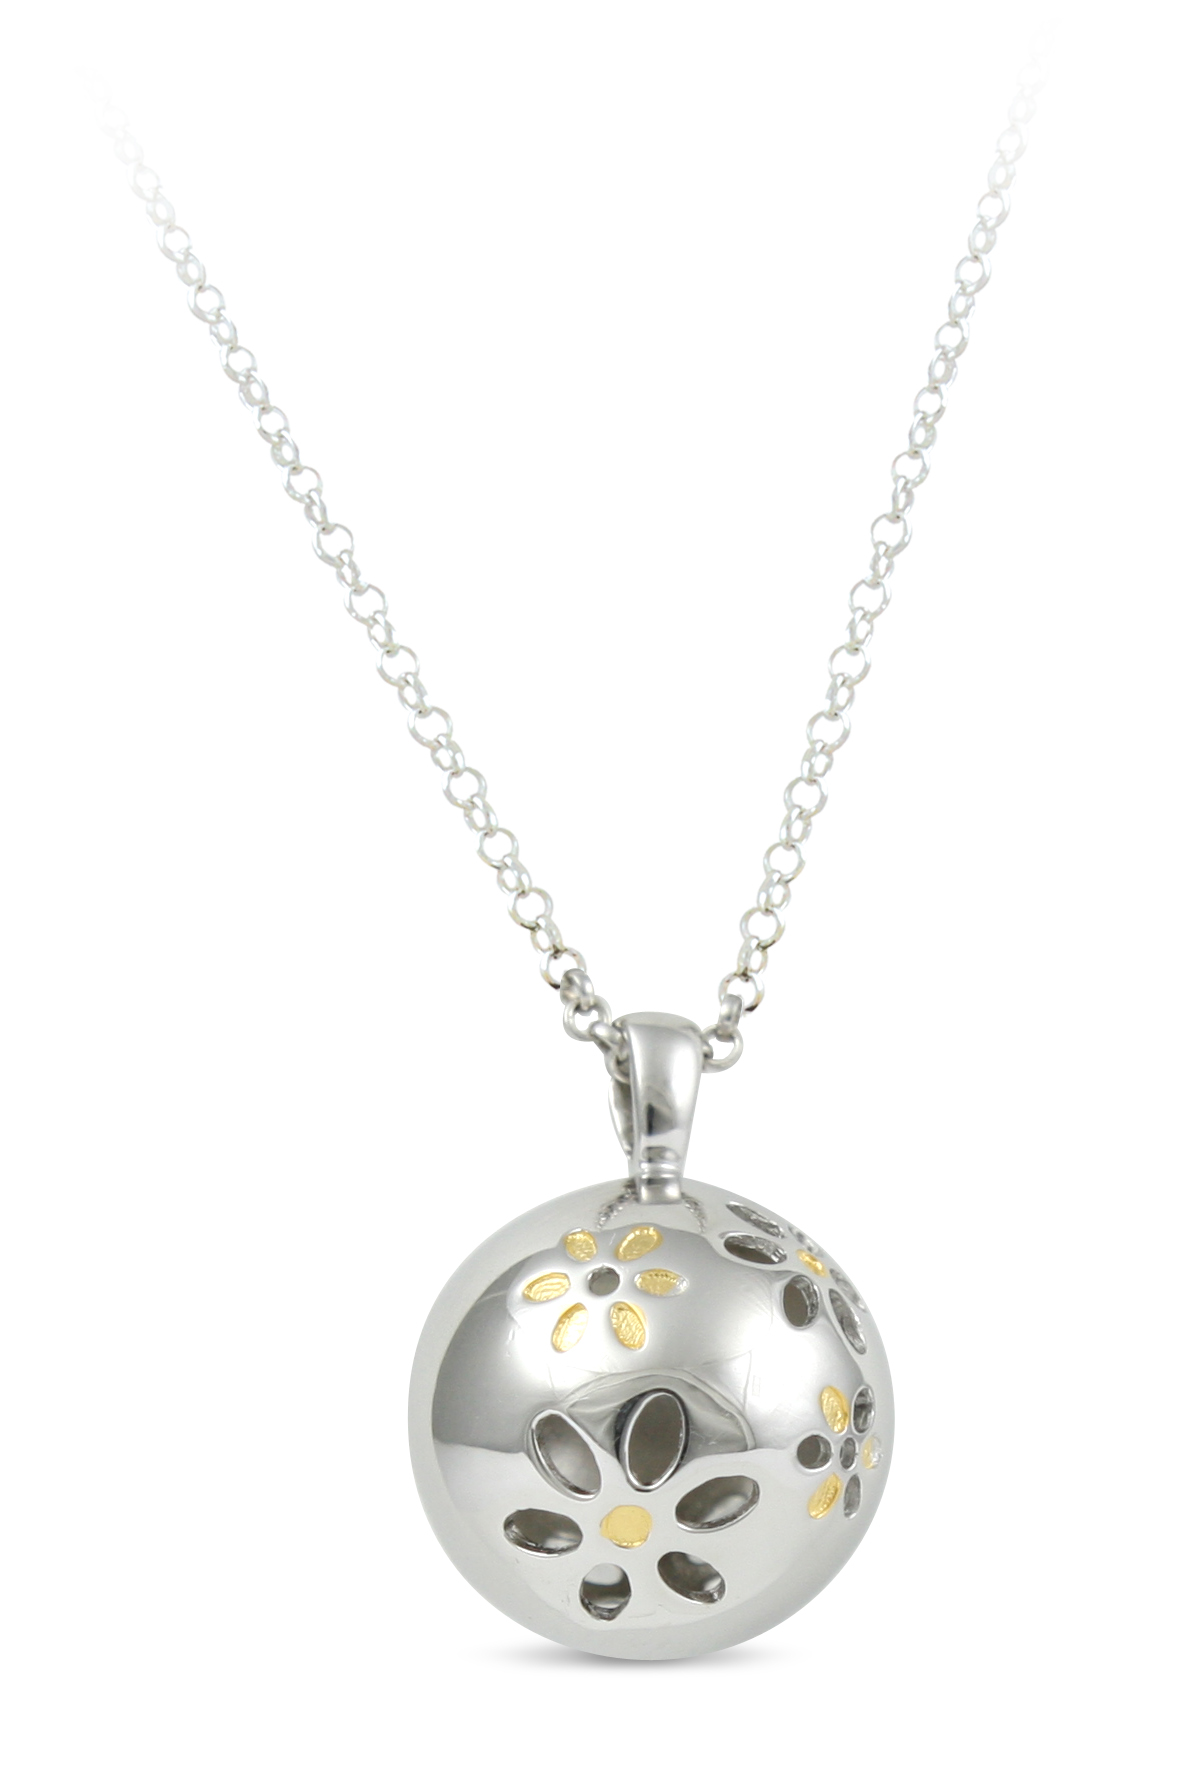 65701 - Sphere of Life 'Wild at Heart' Pendant in Sterling Silver